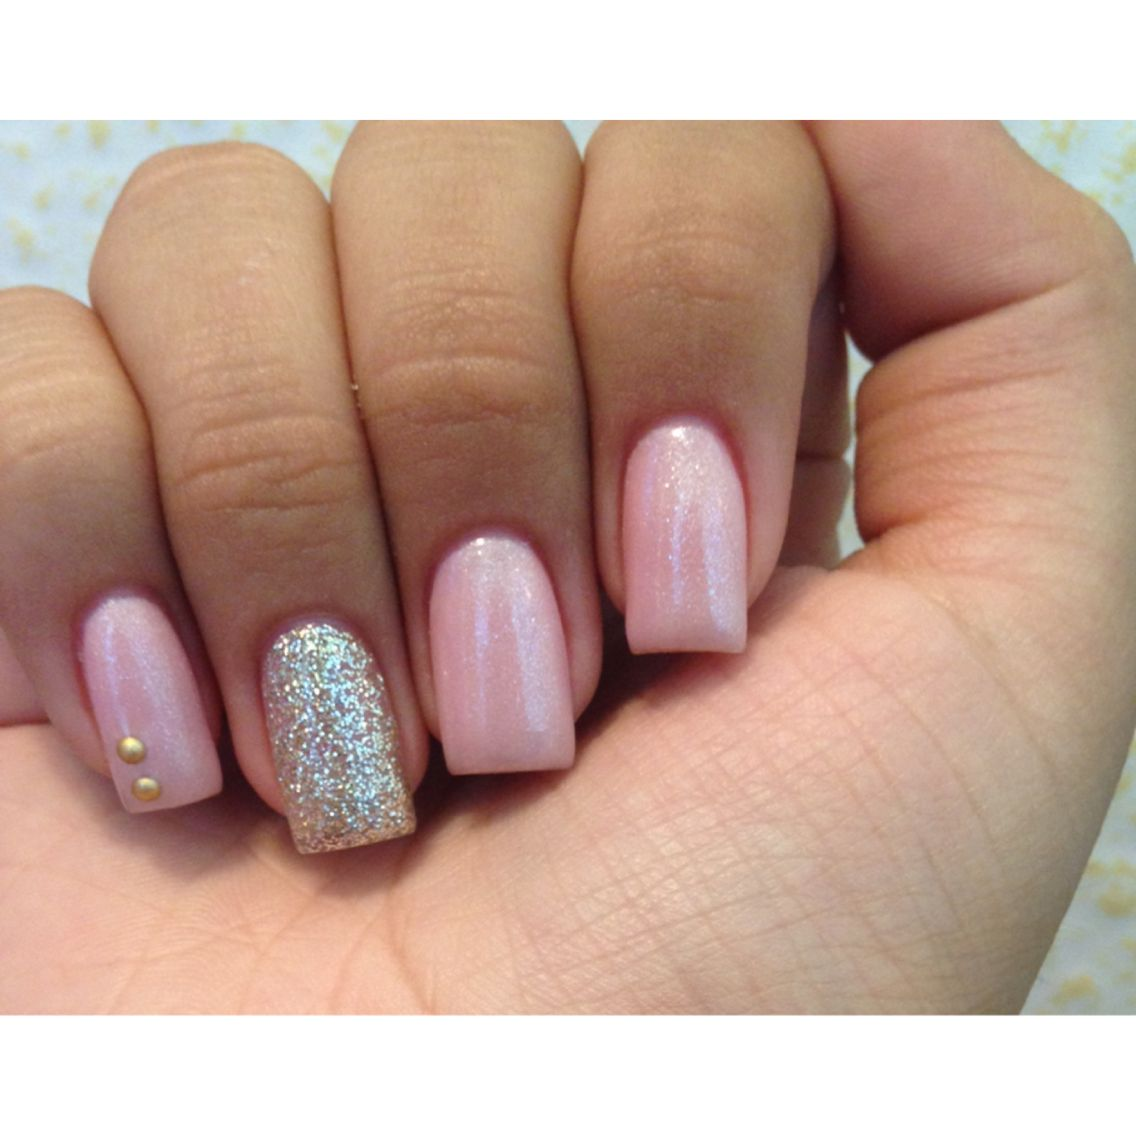 Light Pink Gel Nails With A Silver Glitter Accent Nail Coffin Nails Designs Gel Nails Accent Nails